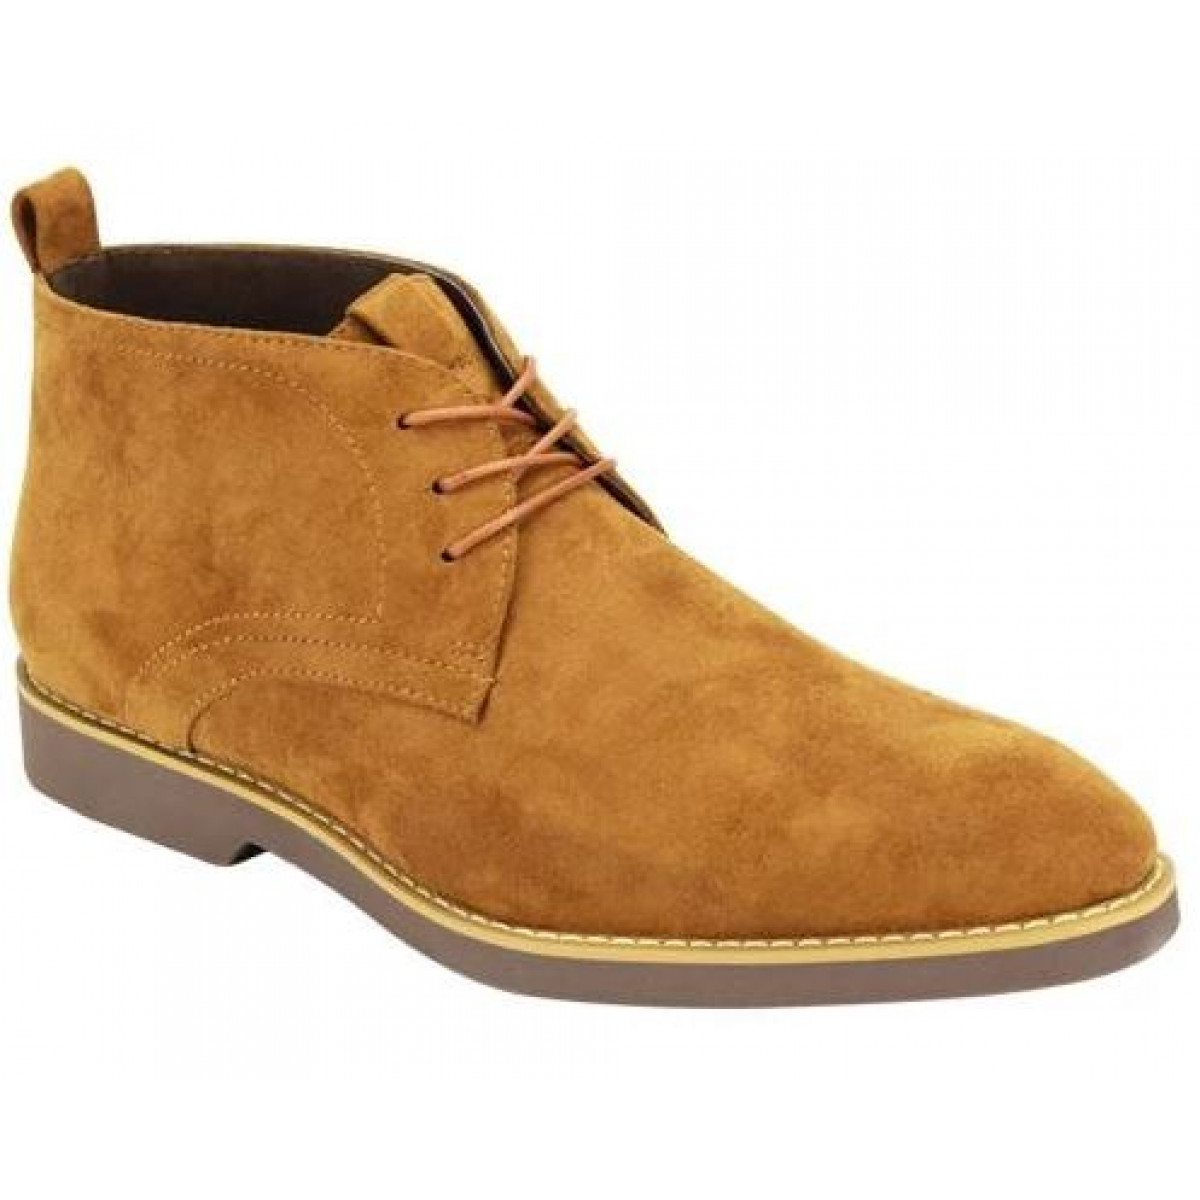 Steven Land SL0084 Light Weight Suede Leather Boot